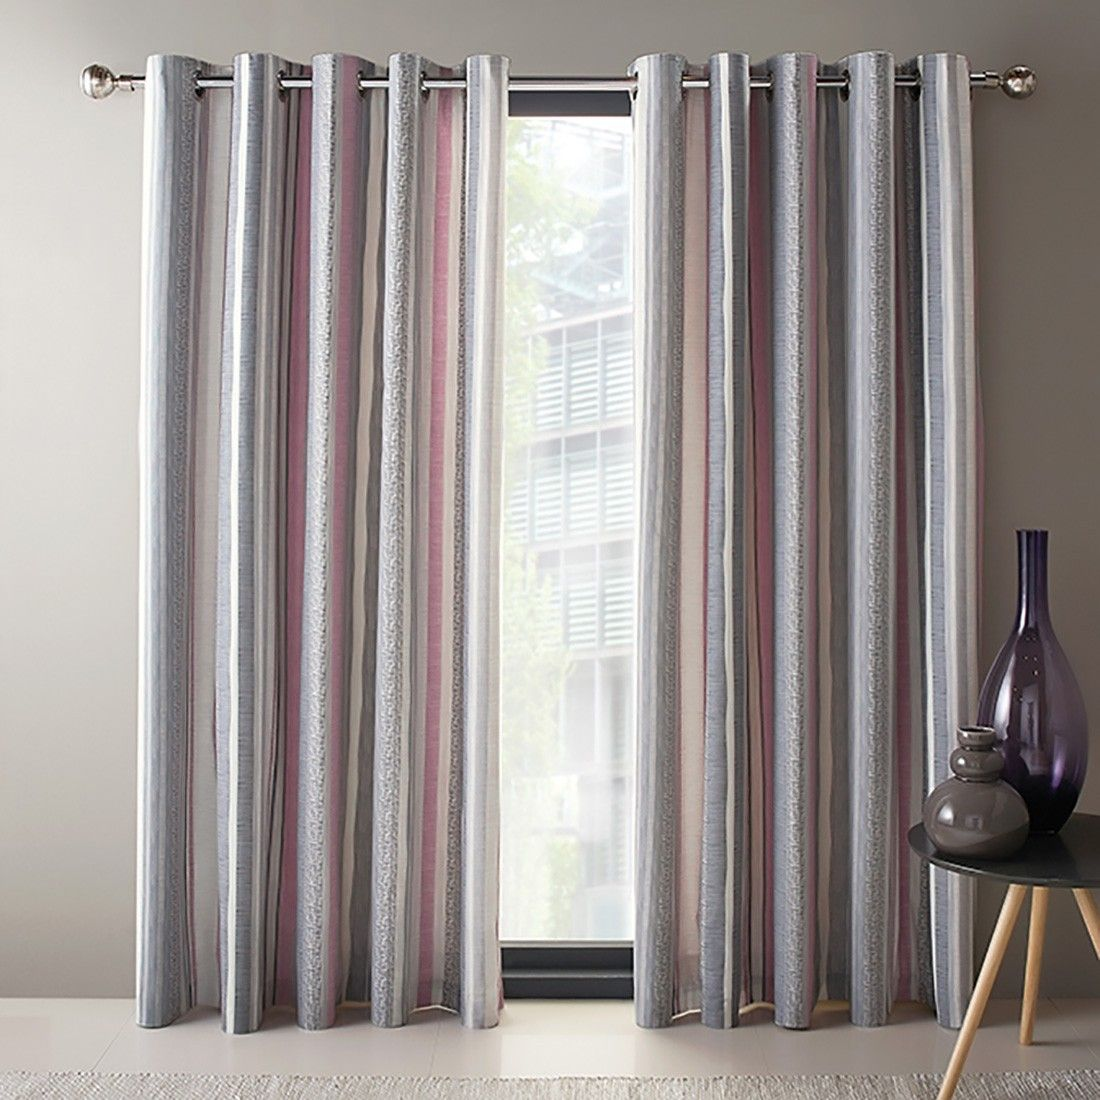 window co arresting veloclub drapes sliding awesome thermal door curtains insulated for doors lovable glass win modern curtain patrofi patio treatments resize